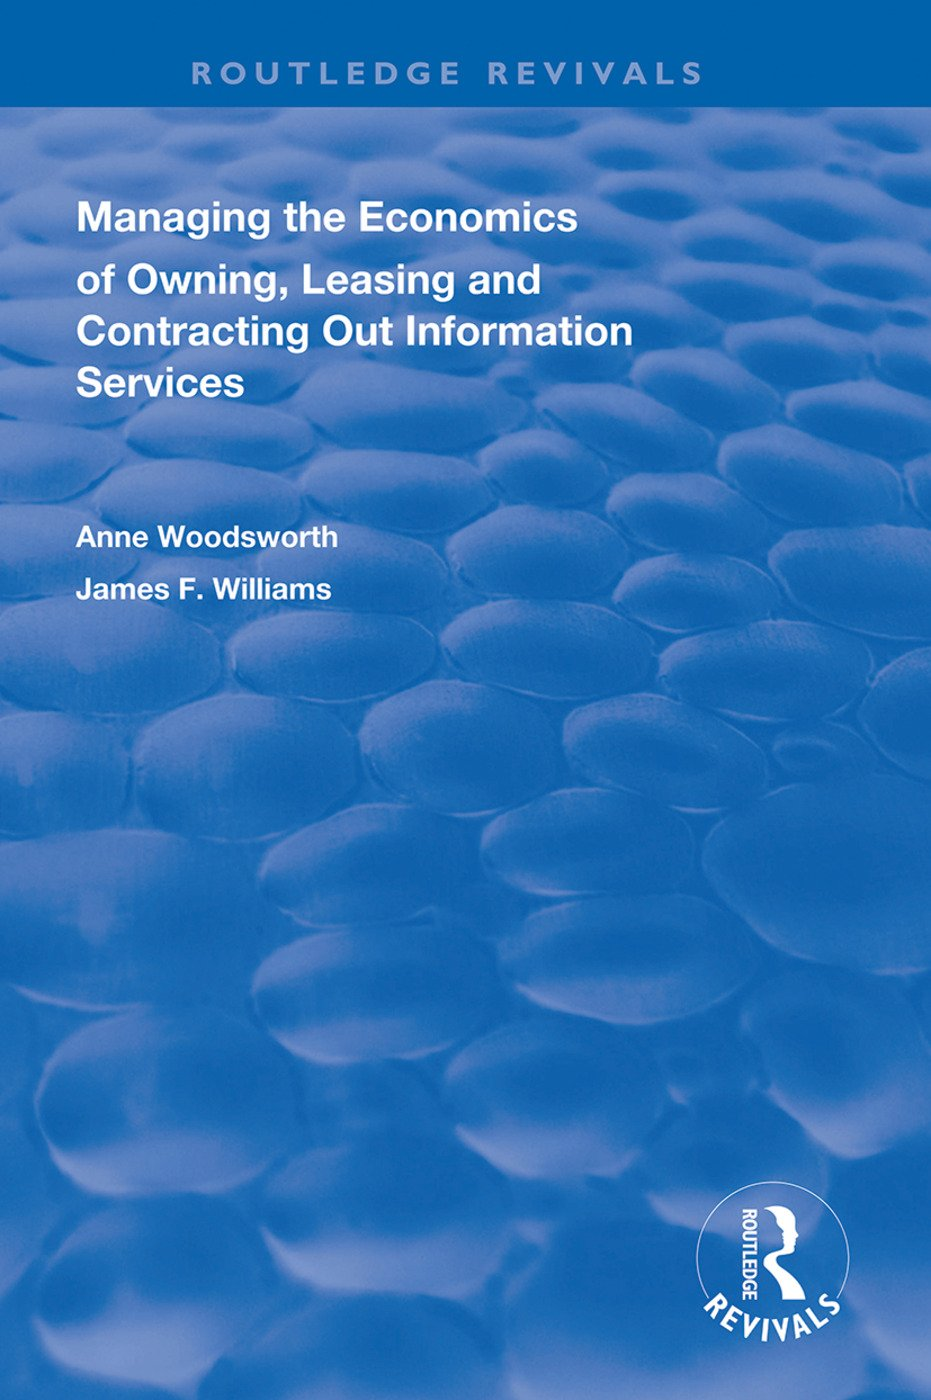 Managing the Economics of Owning, Leasing and Contracting Out Information Services book cover